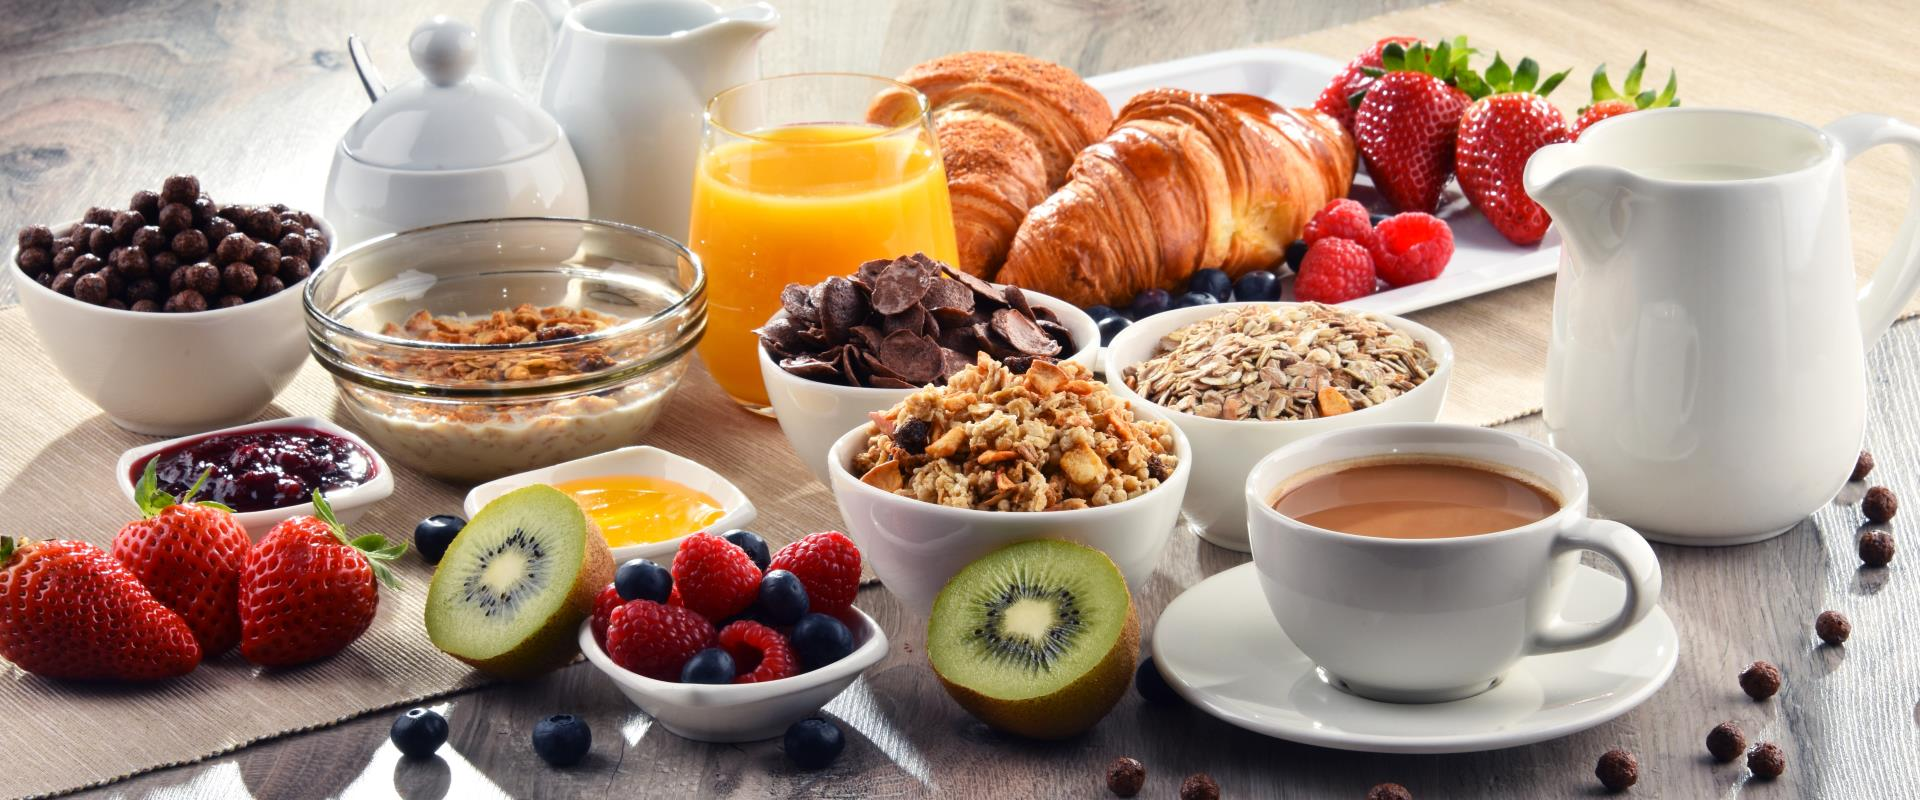 Free breakfast BWR members Gold, Platinum, Diamond and Diamond Select